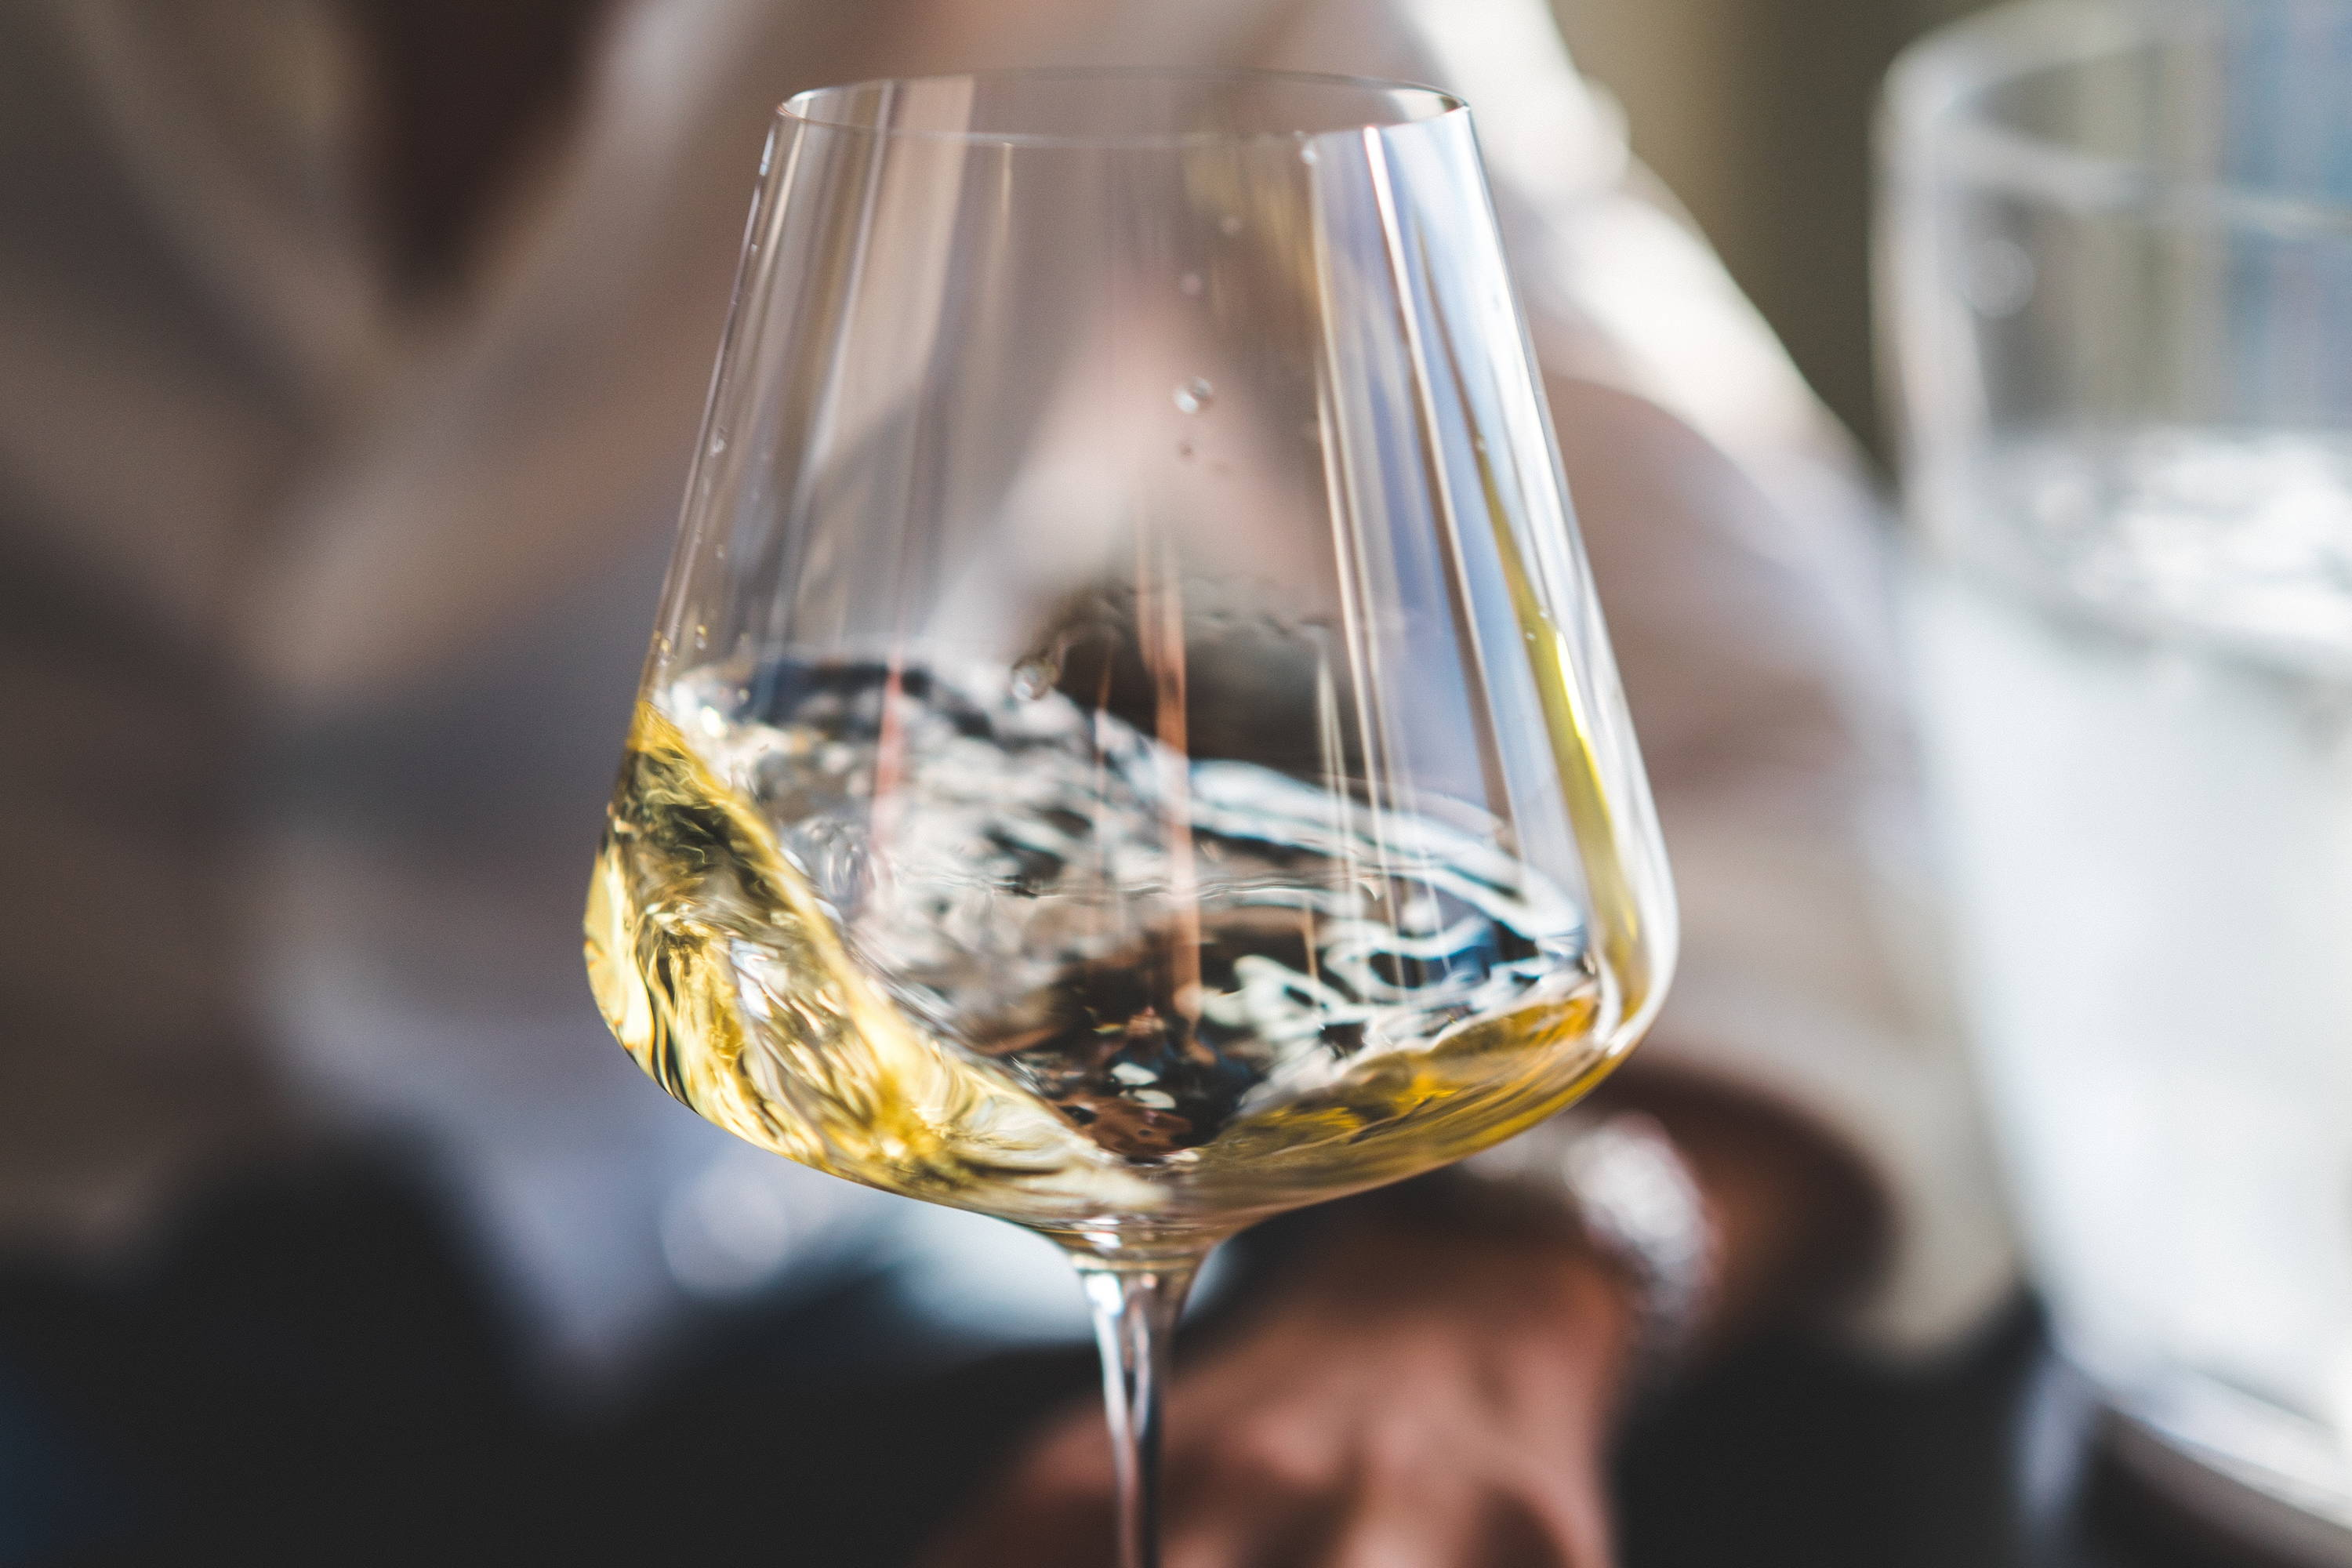 Glass of swirling white wine in a glass.